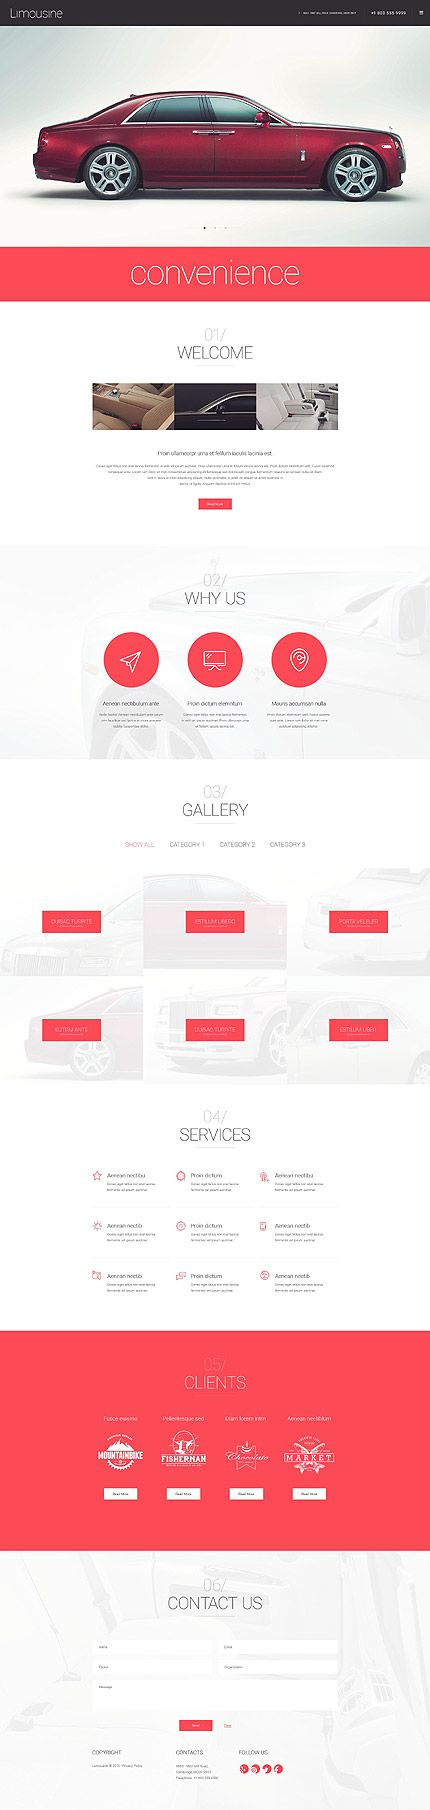 38 best Cars \ motorcycles Template Press images on Pinterest Cars - new 8 capability statement template